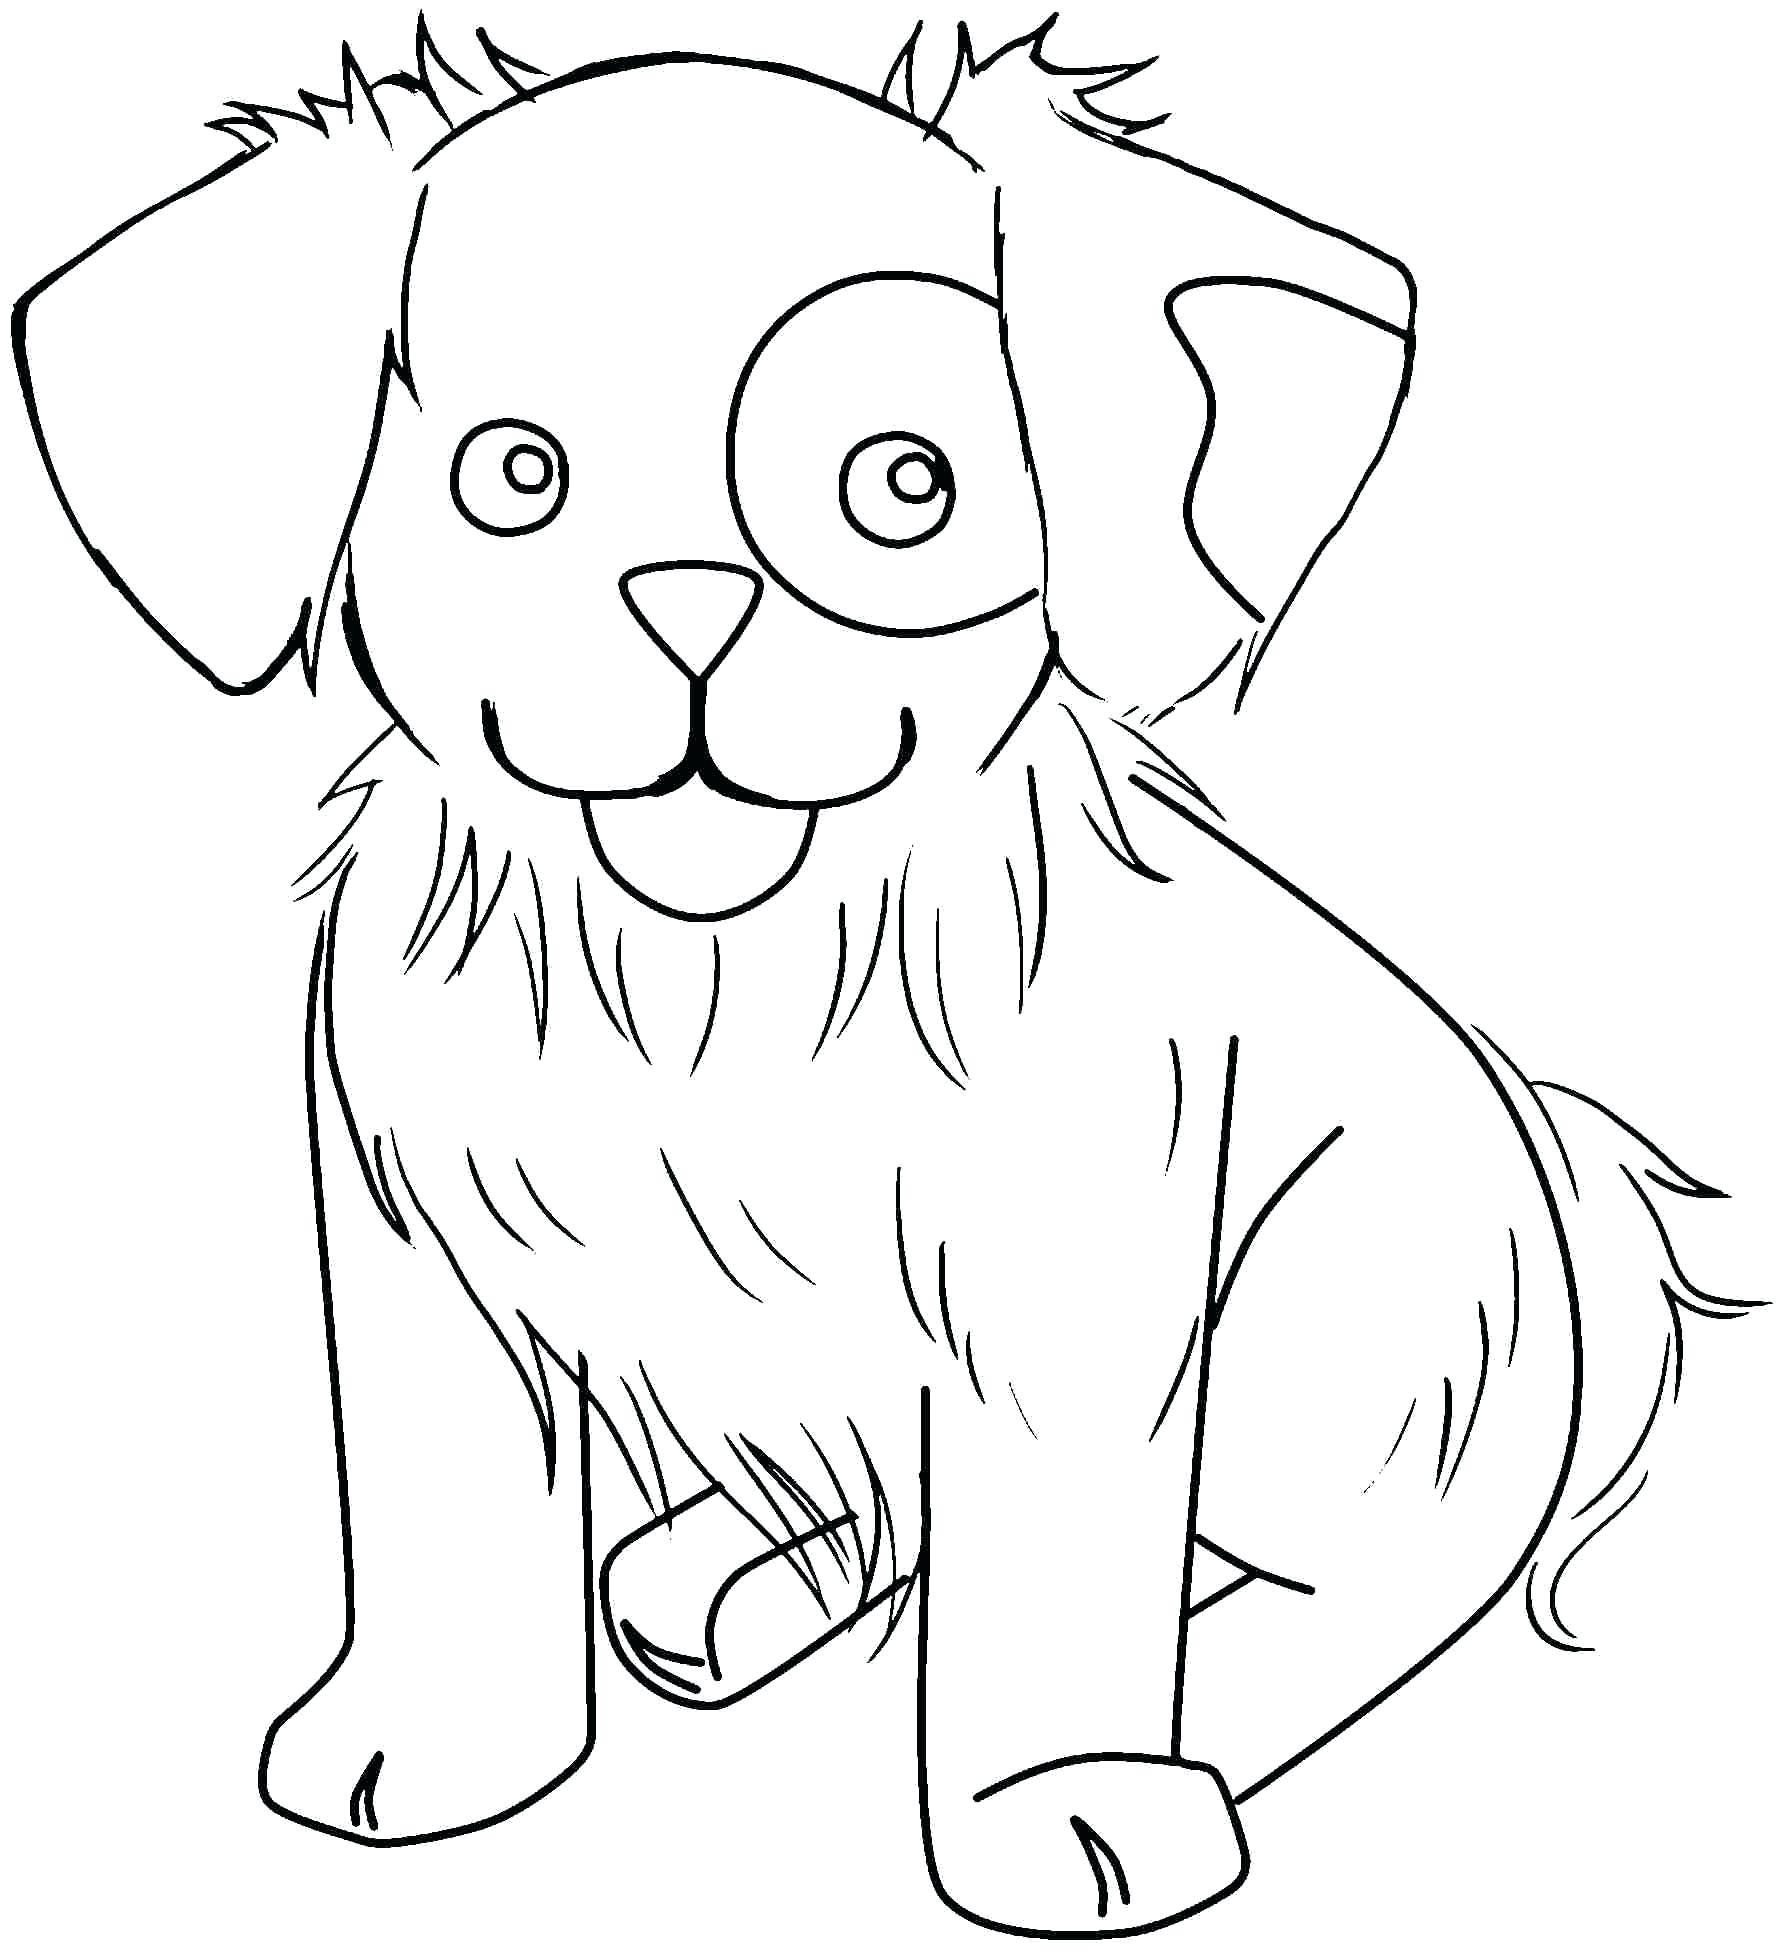 A cute dog Coloring Page